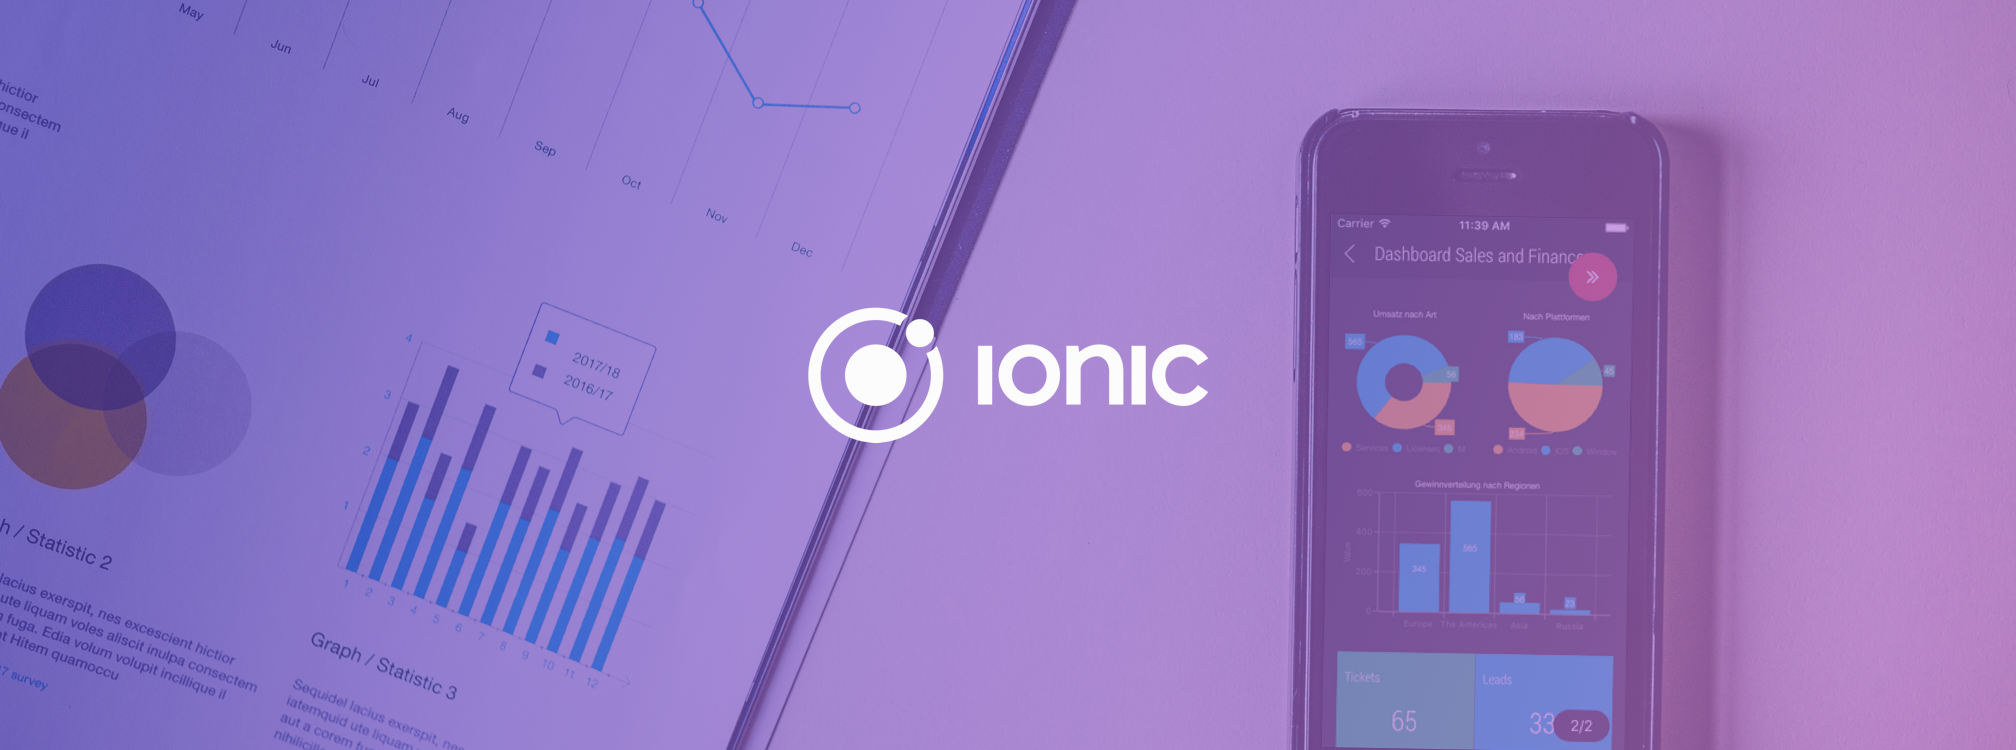 create charts with ionic 2